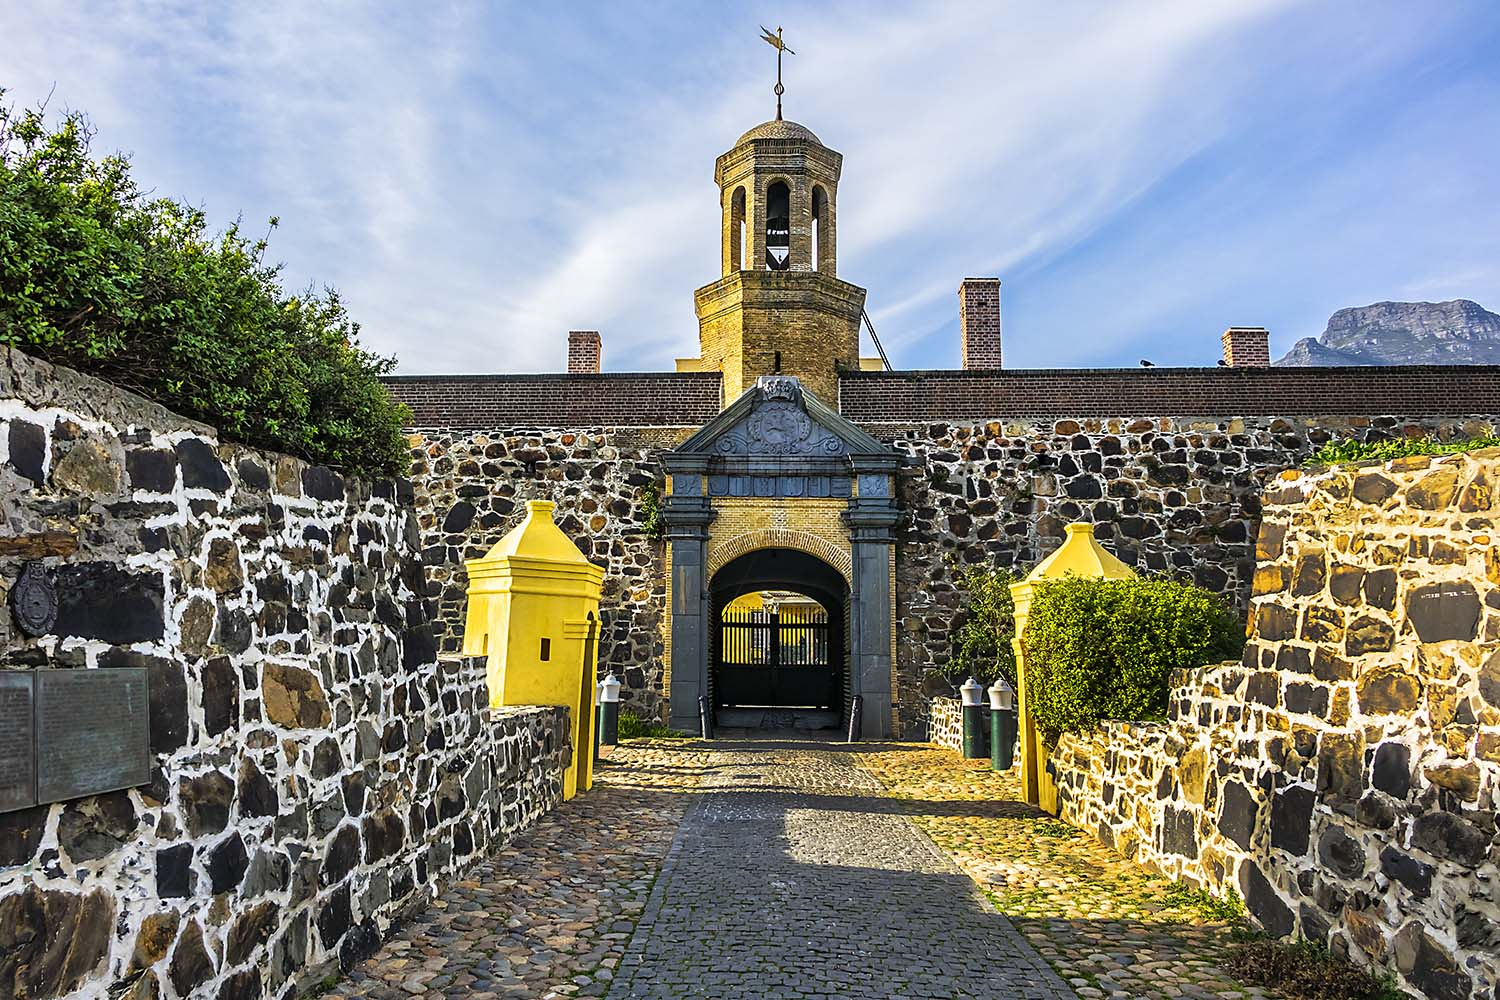 Entrance to the Castle of Good Hope or Cape Town Castle